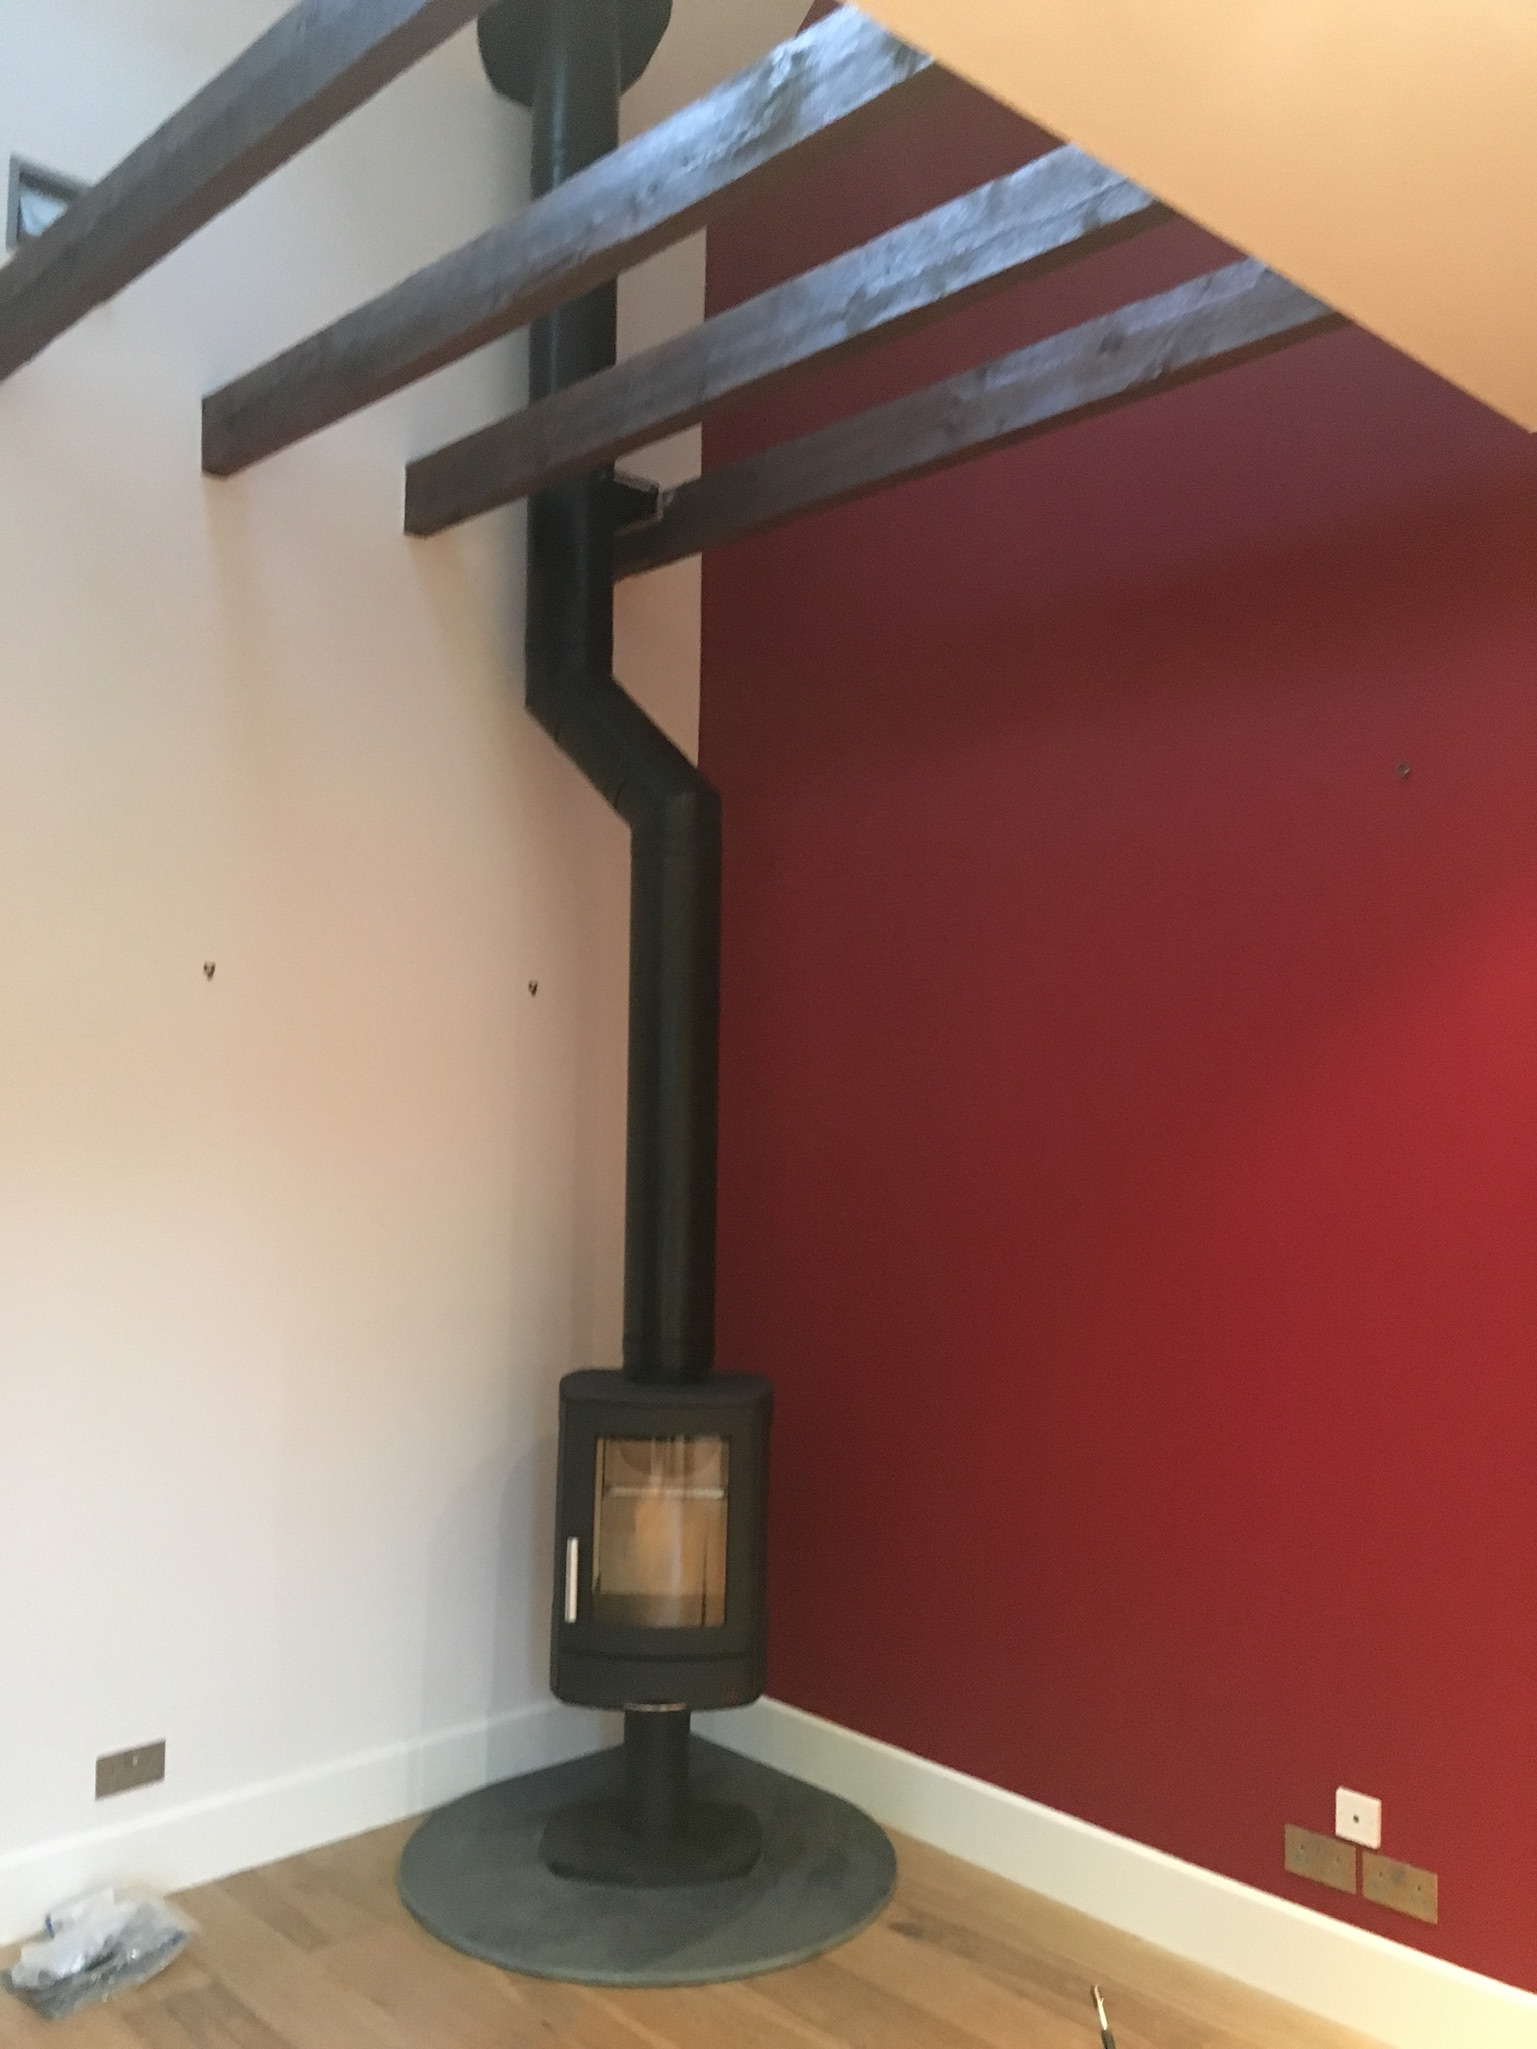 Freestanding stove with tall flue